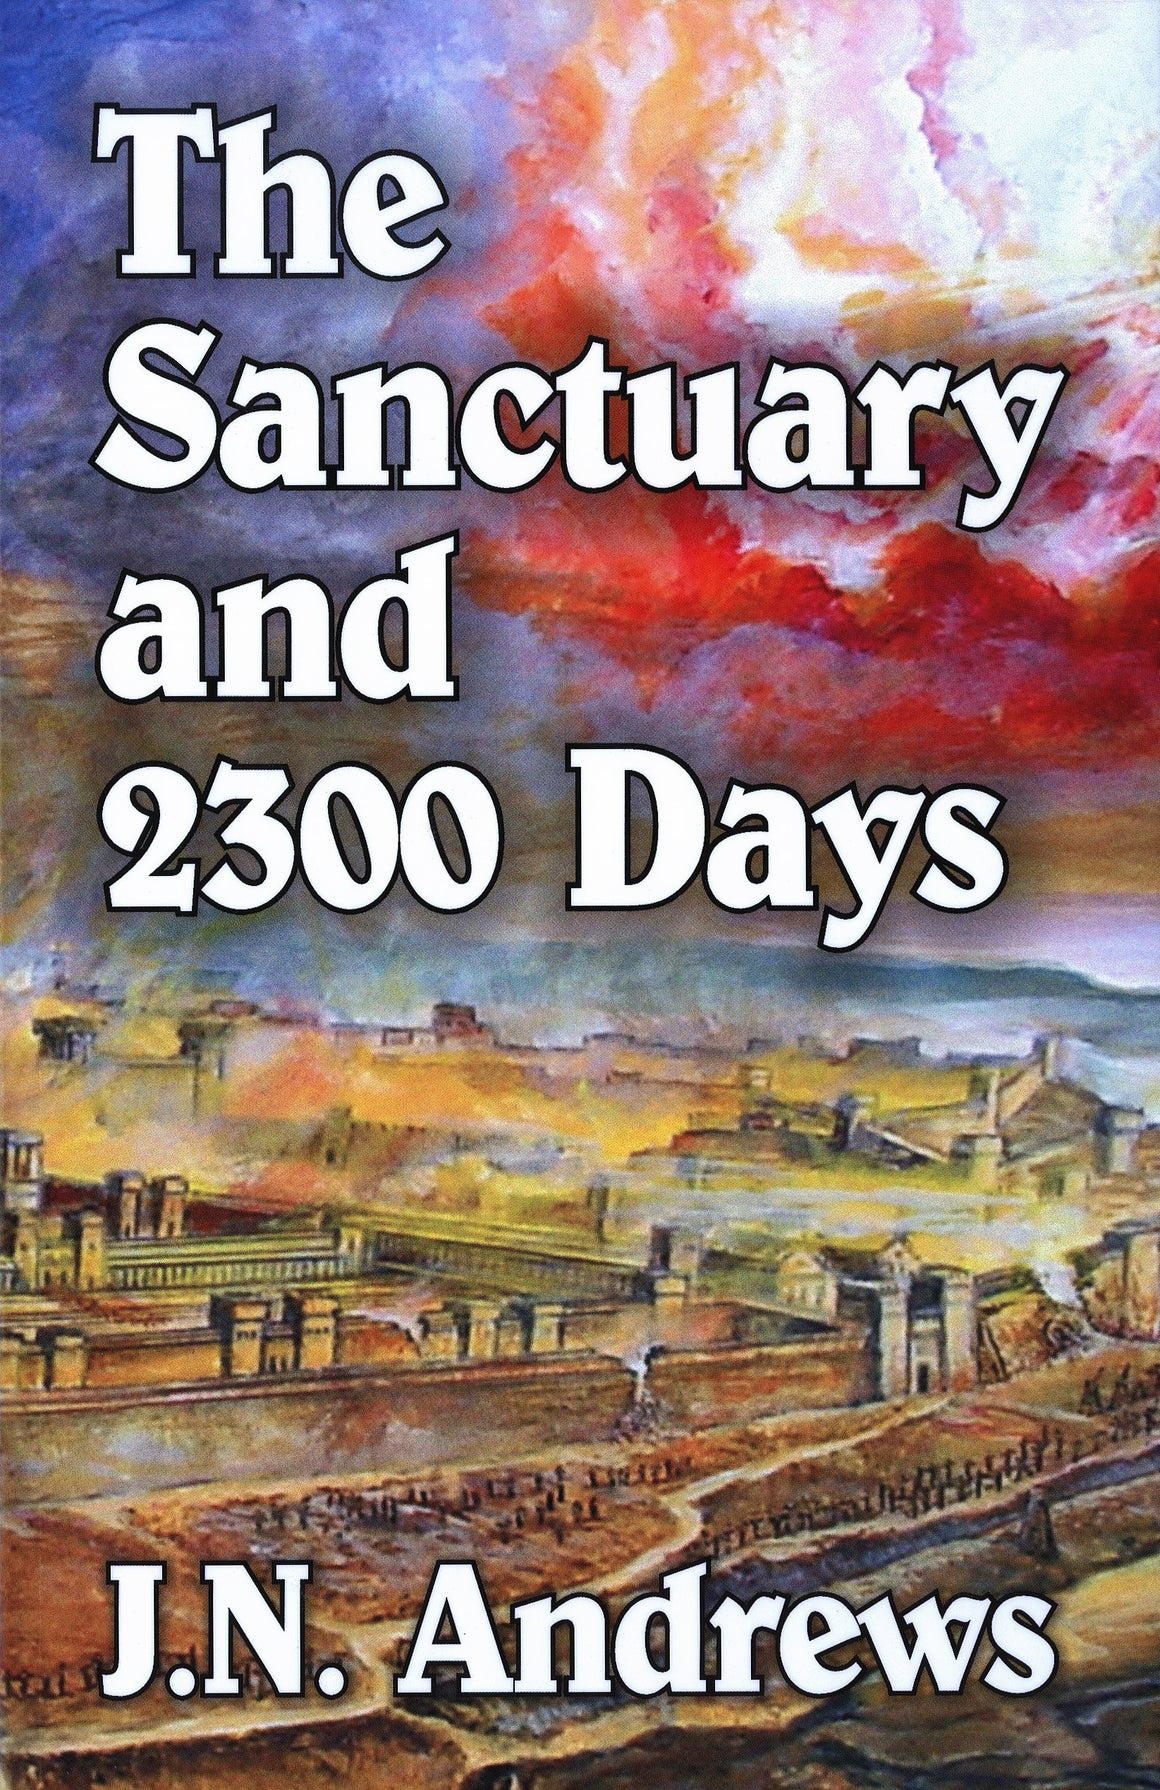 The Sanctuary and the 2300 Days